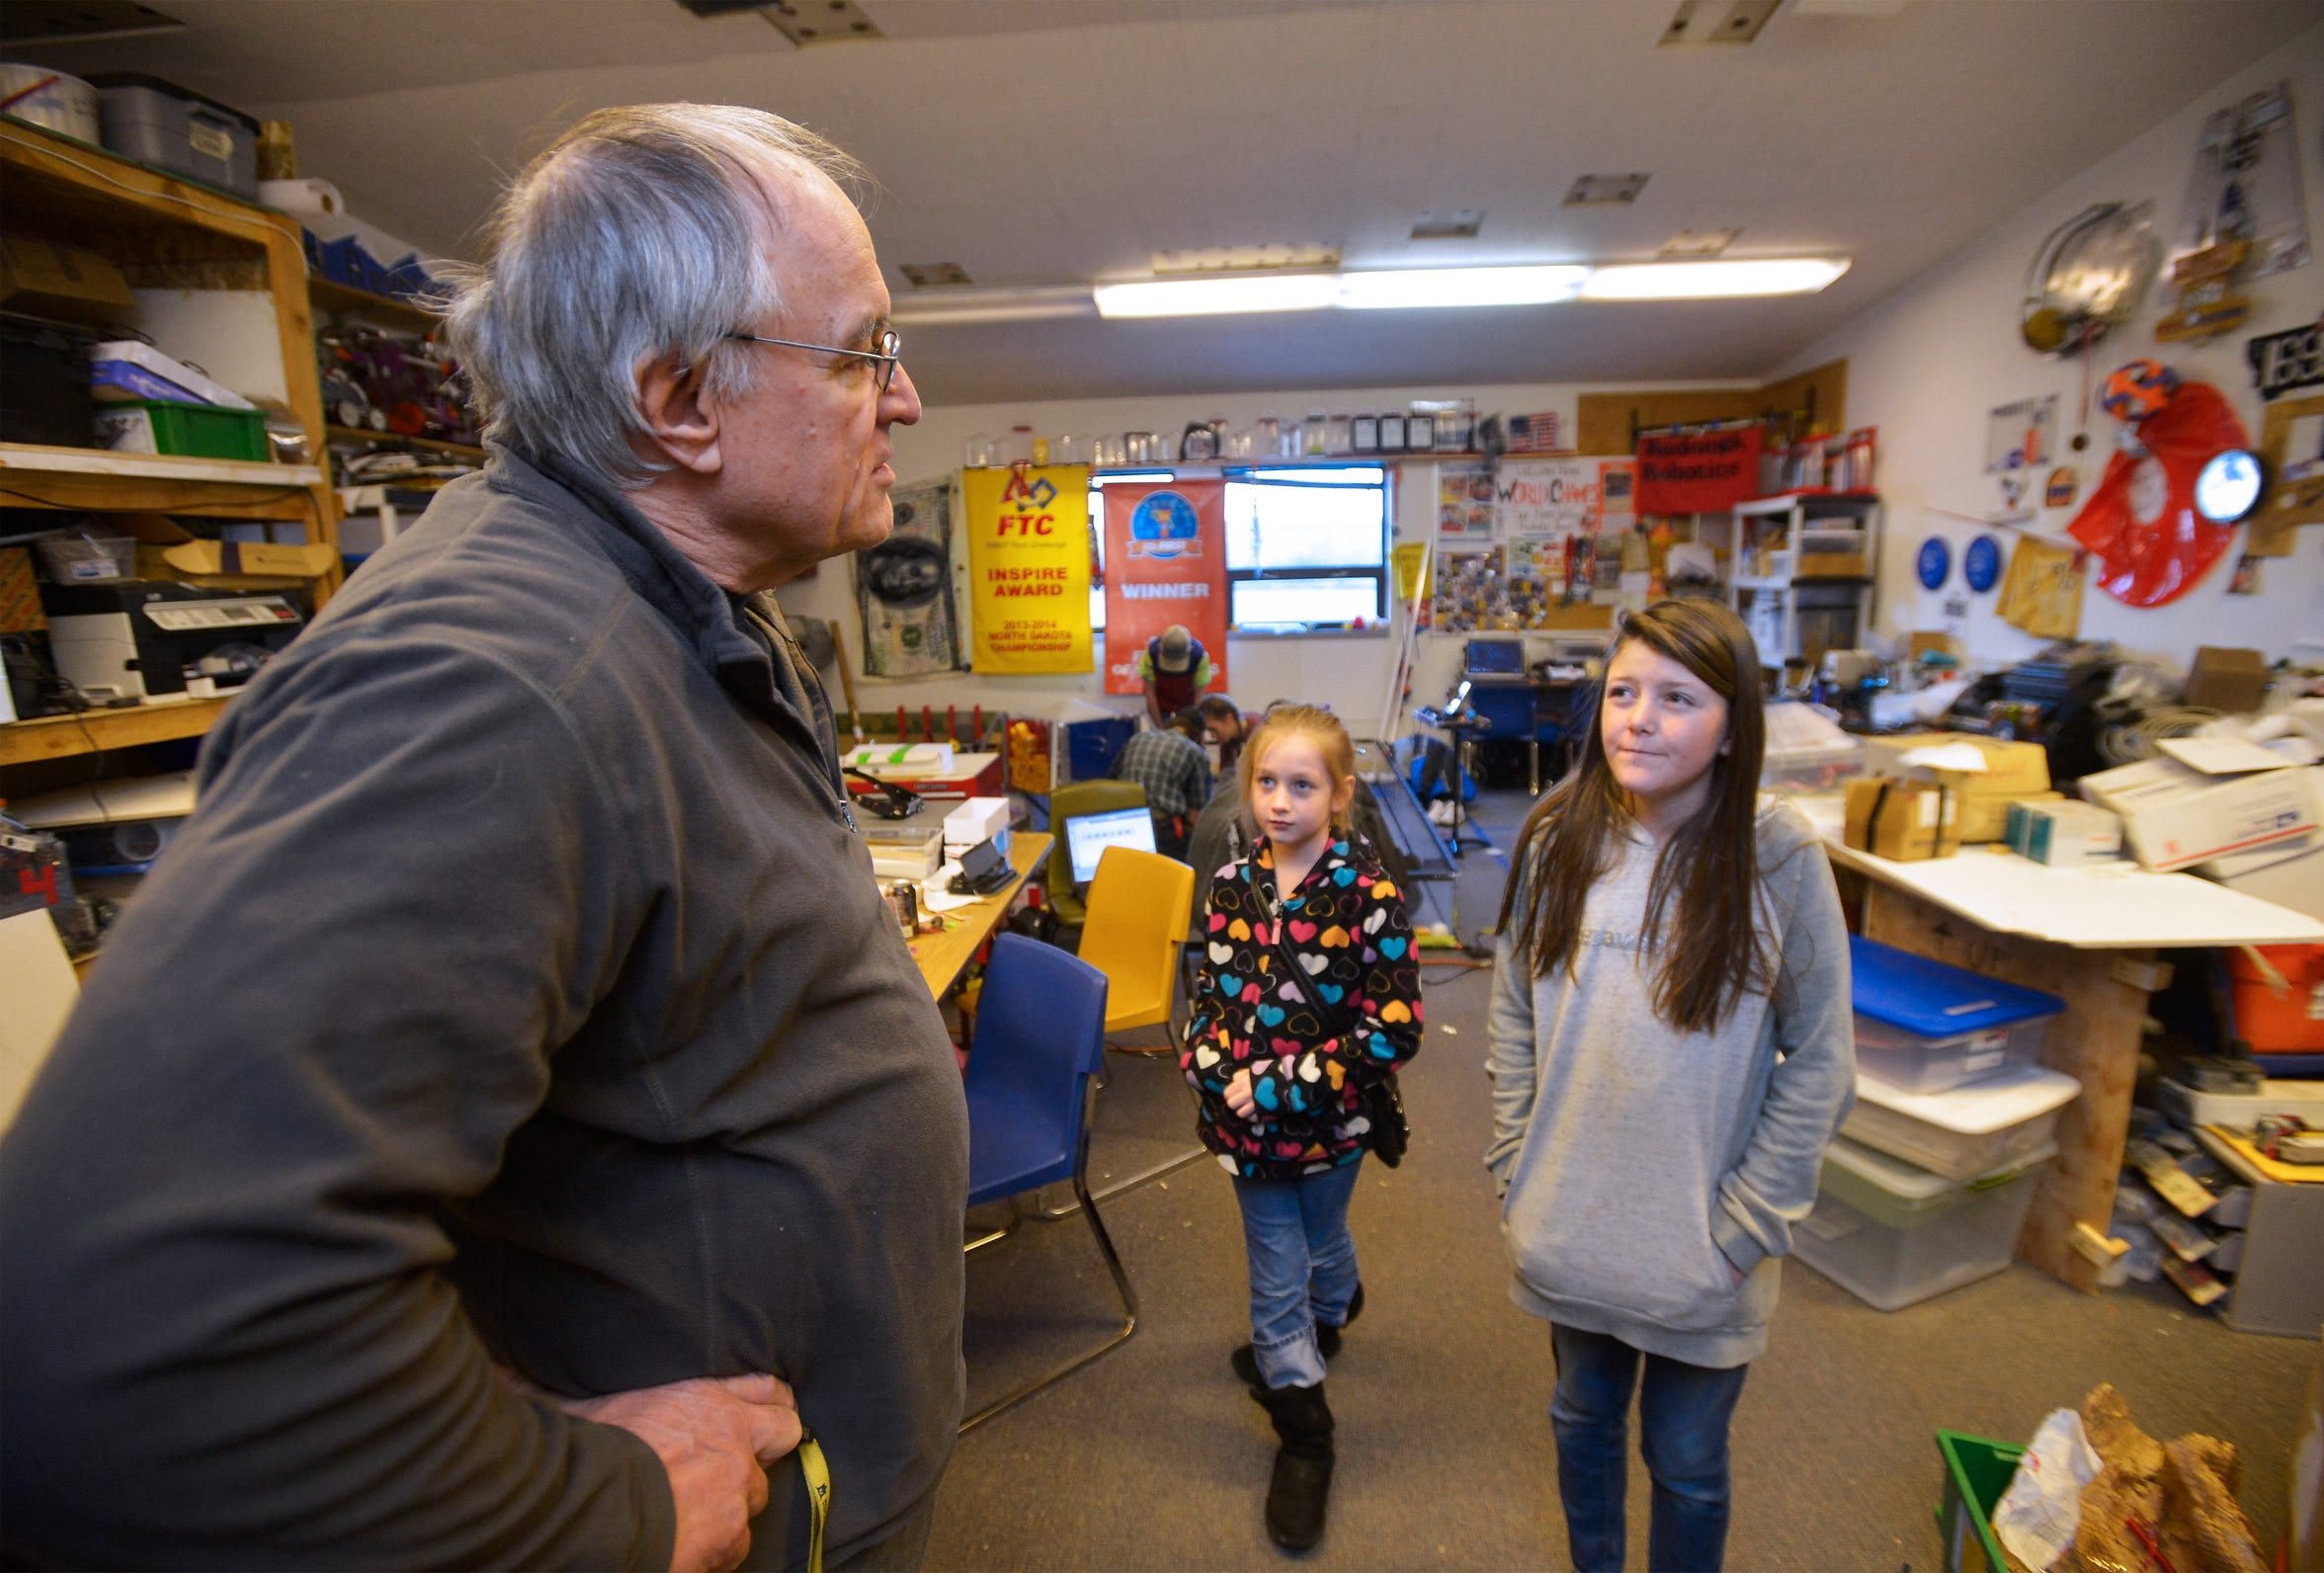 Chuck Merja discusses a robot project with Kenna Brooks, age 9, and Christine Webster, age 12, during Sun River robotics team meeting recently. Merja, who was in a life-threatening farm accident in May of this year, has recovered enough to return to his coaching and mentoring role with the team.